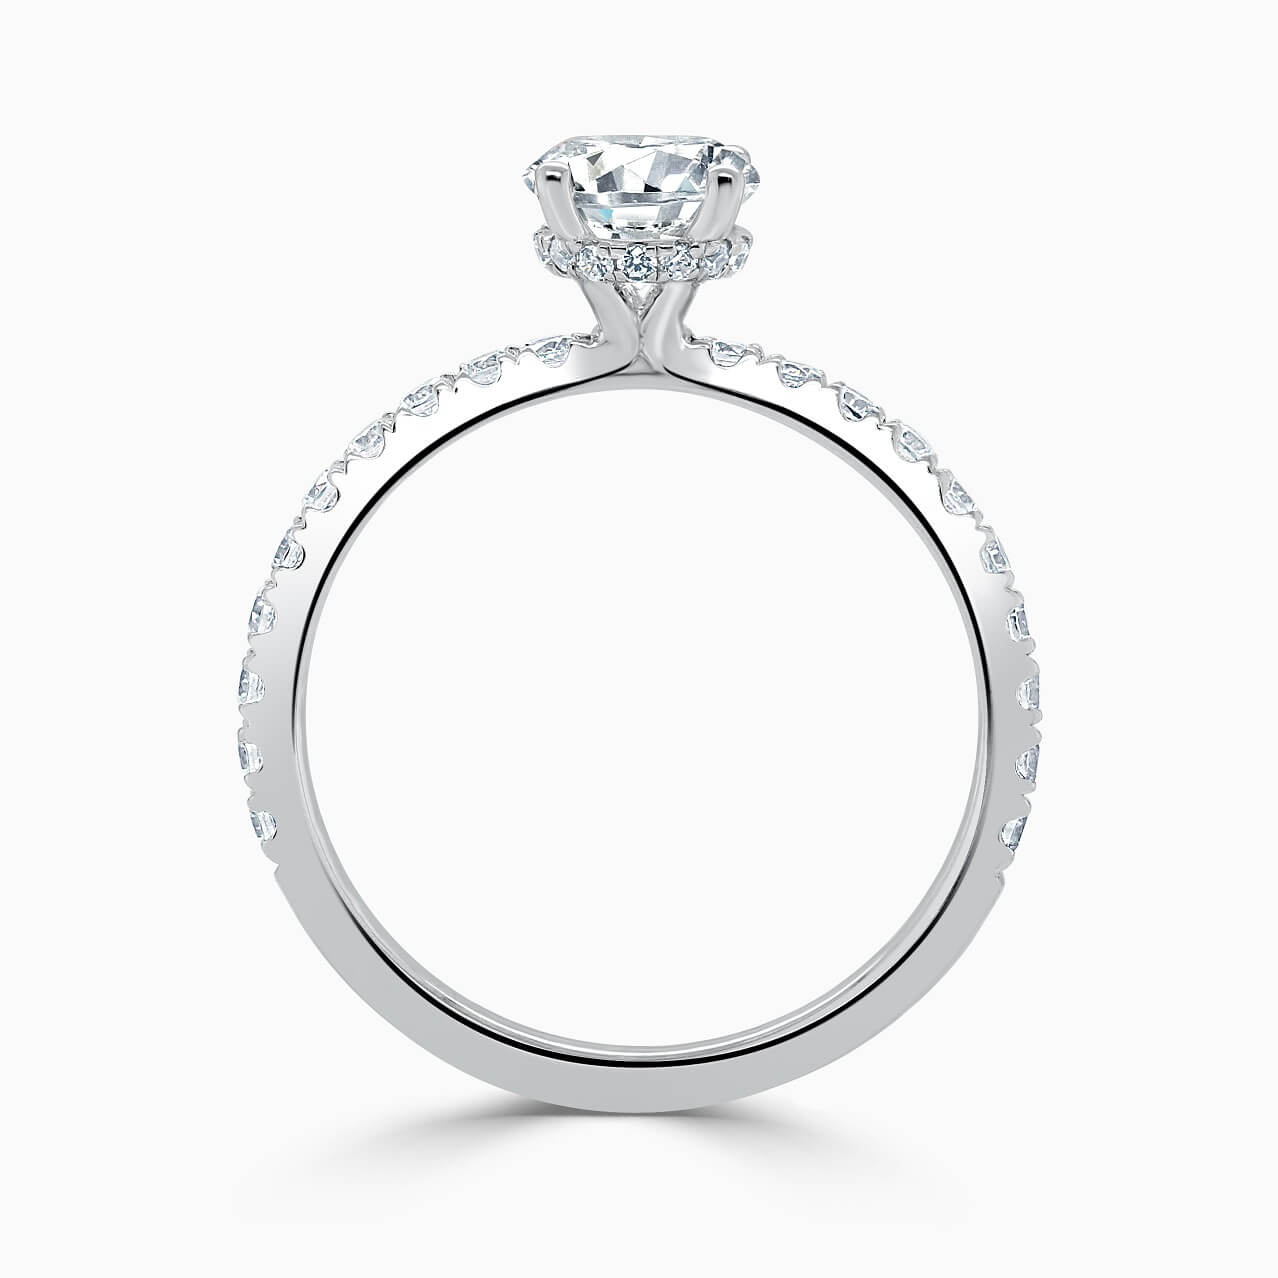 18ct White Gold Round Brilliant Hidden Halo With Cutdown Engagement Ring